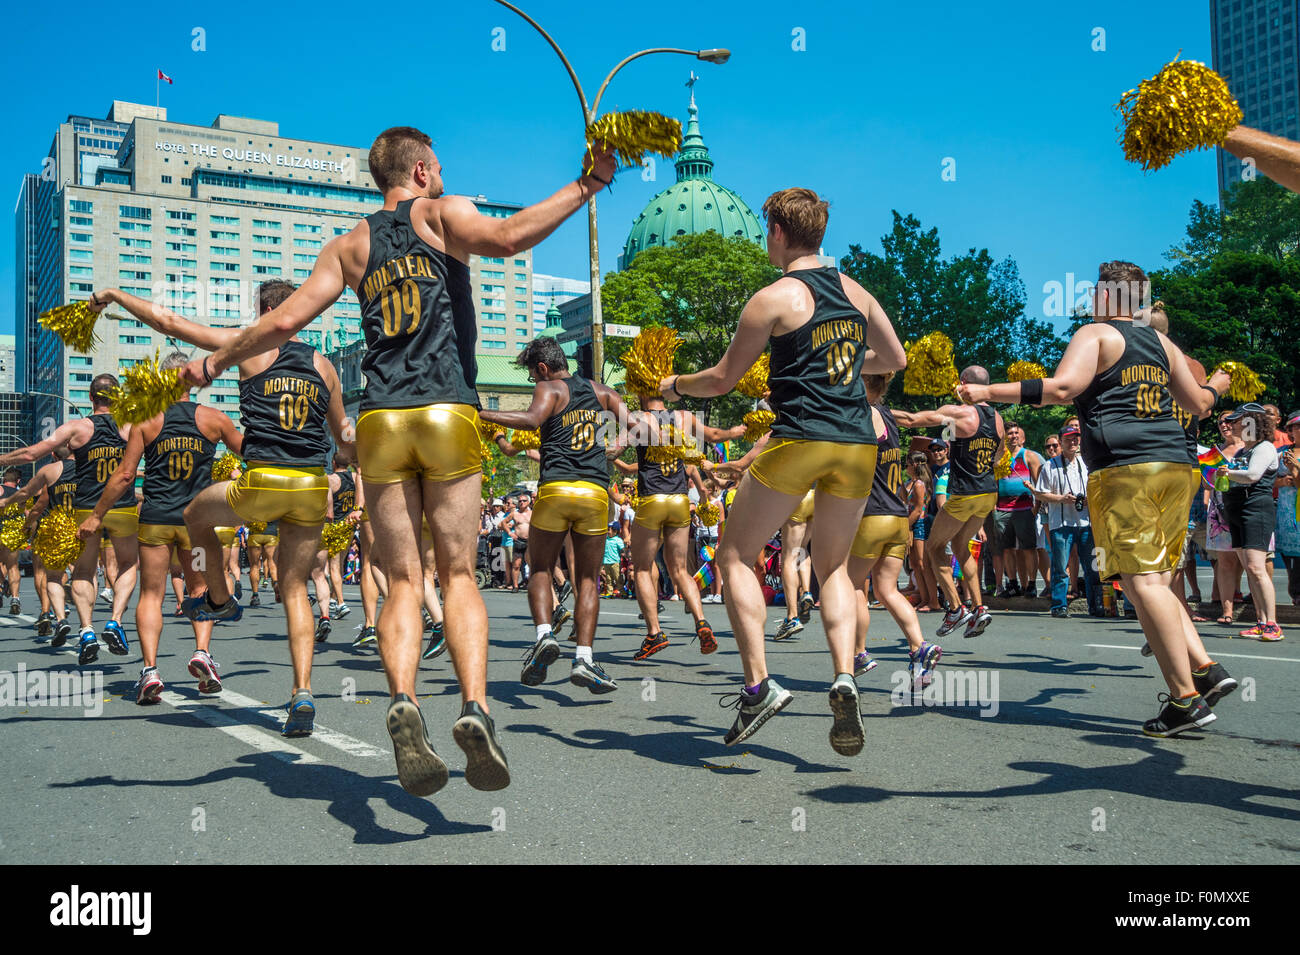 MONTREAL, CANADA, 16th August 2015. A group of gay dancers are performing at the 2015 Gay Pride Parade in Montreal. - Stock Image